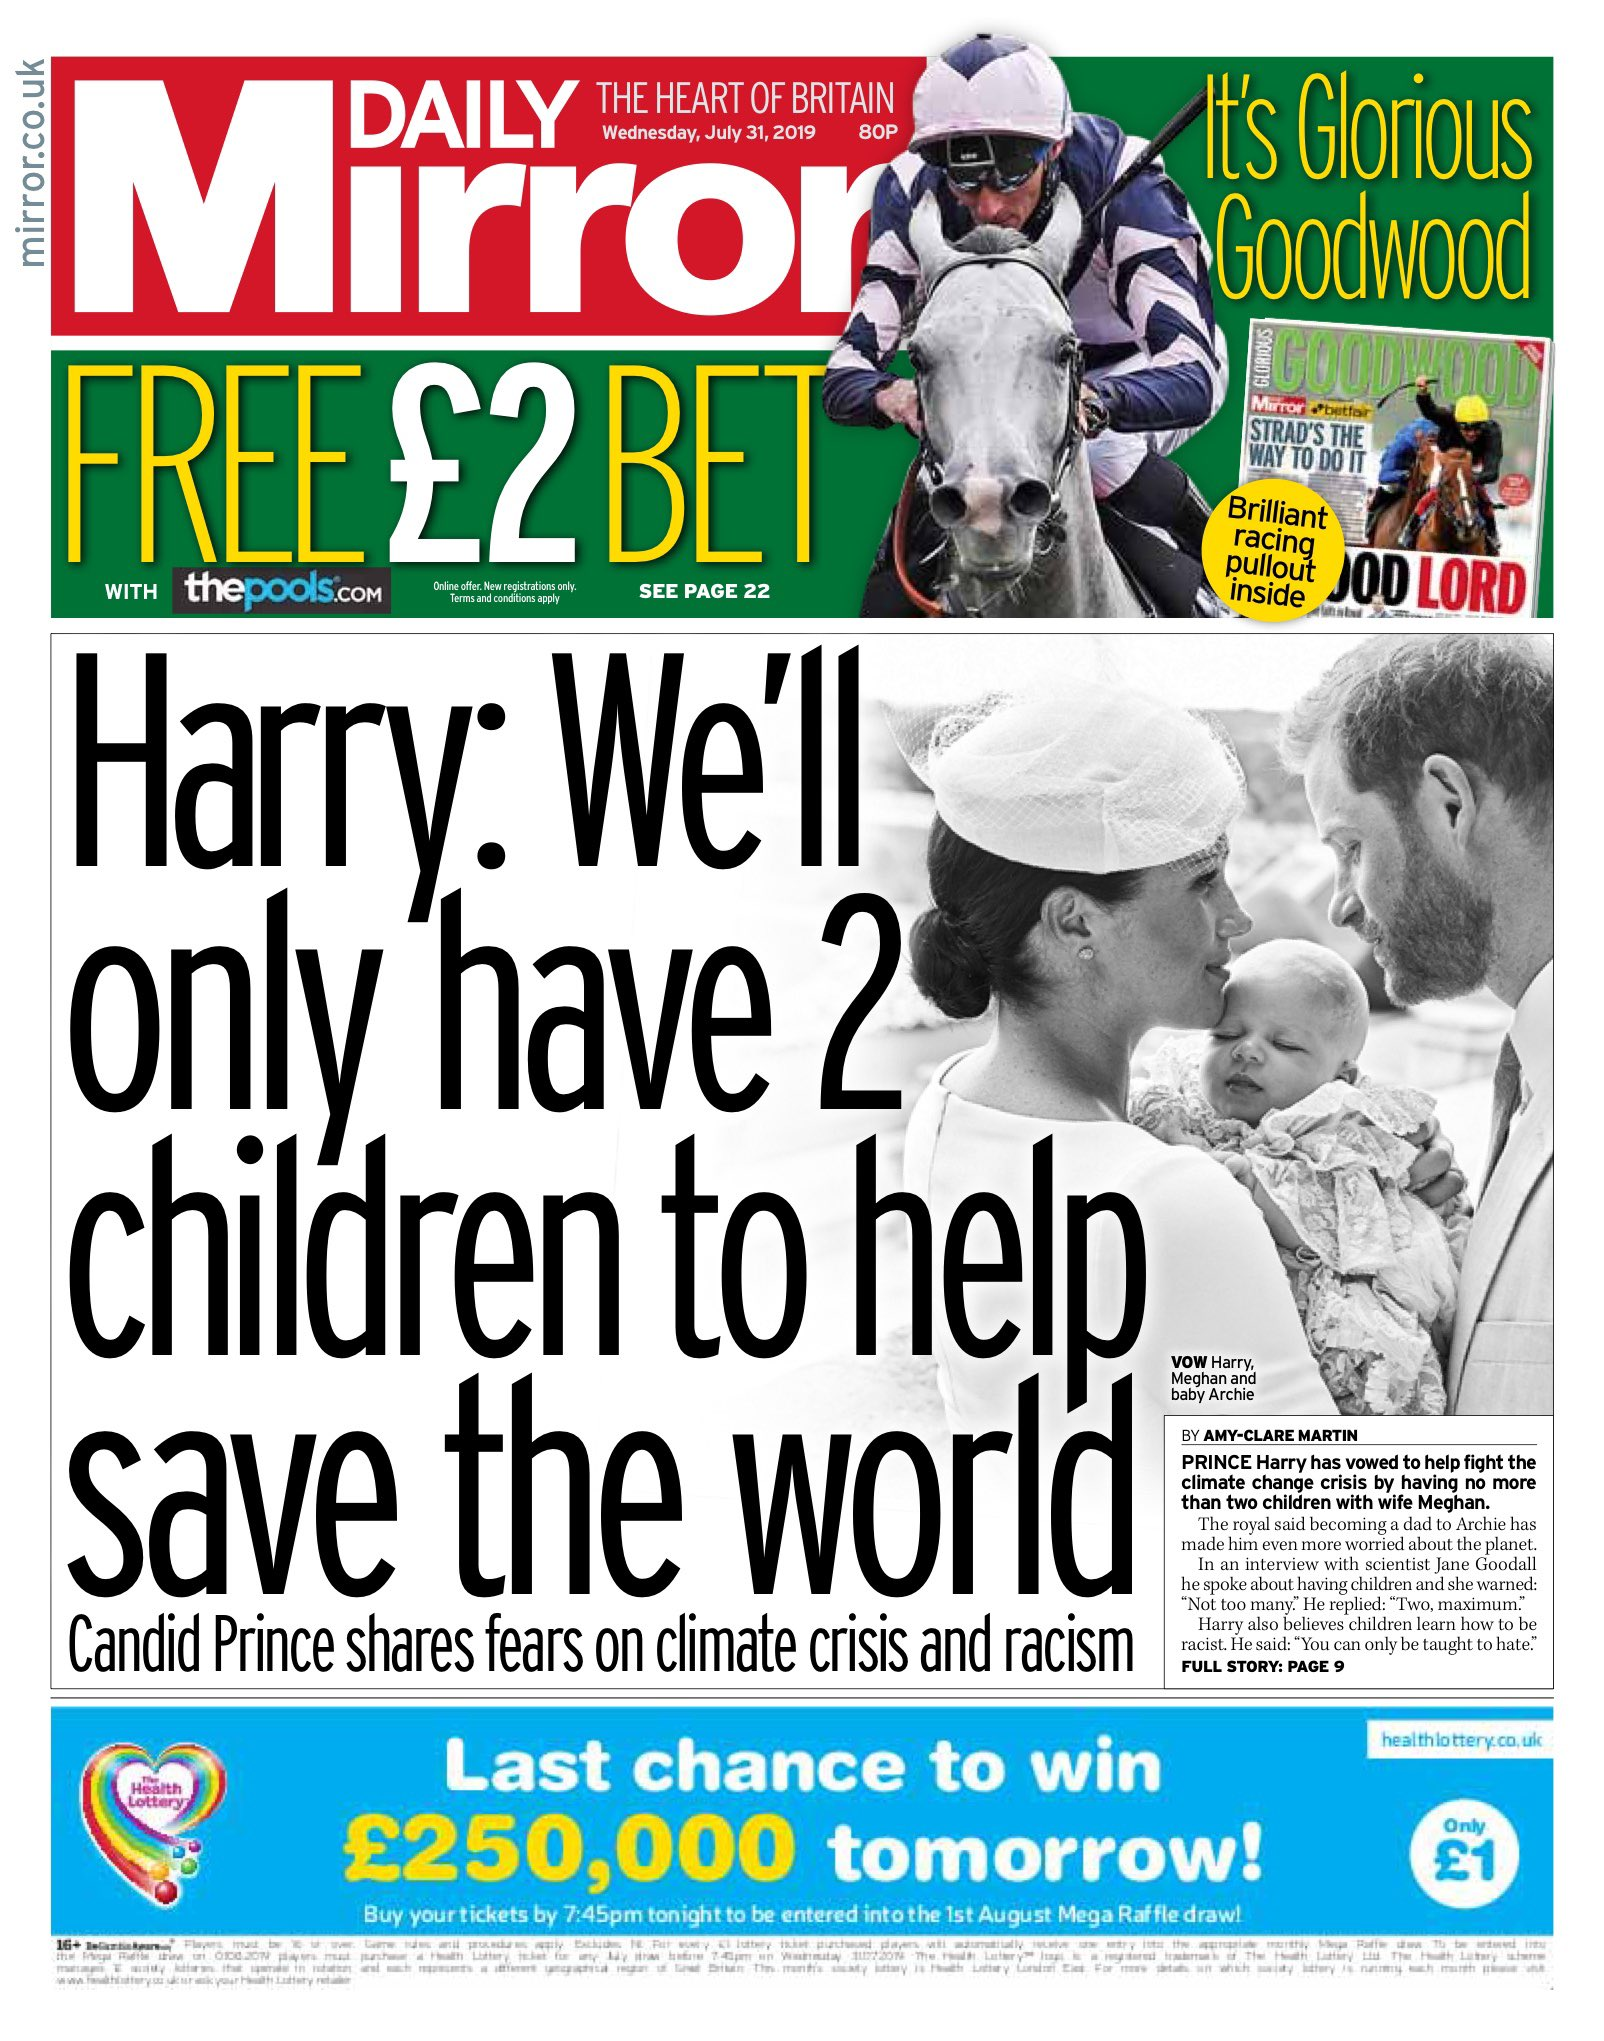 """Wednesday's Mirror: """"Harry: We'll only have 2 children to help save the world"""" #bbcpapers #tomorrowpaperstoday (via @hendopolis) https://t.co/ZqOAourDTd"""